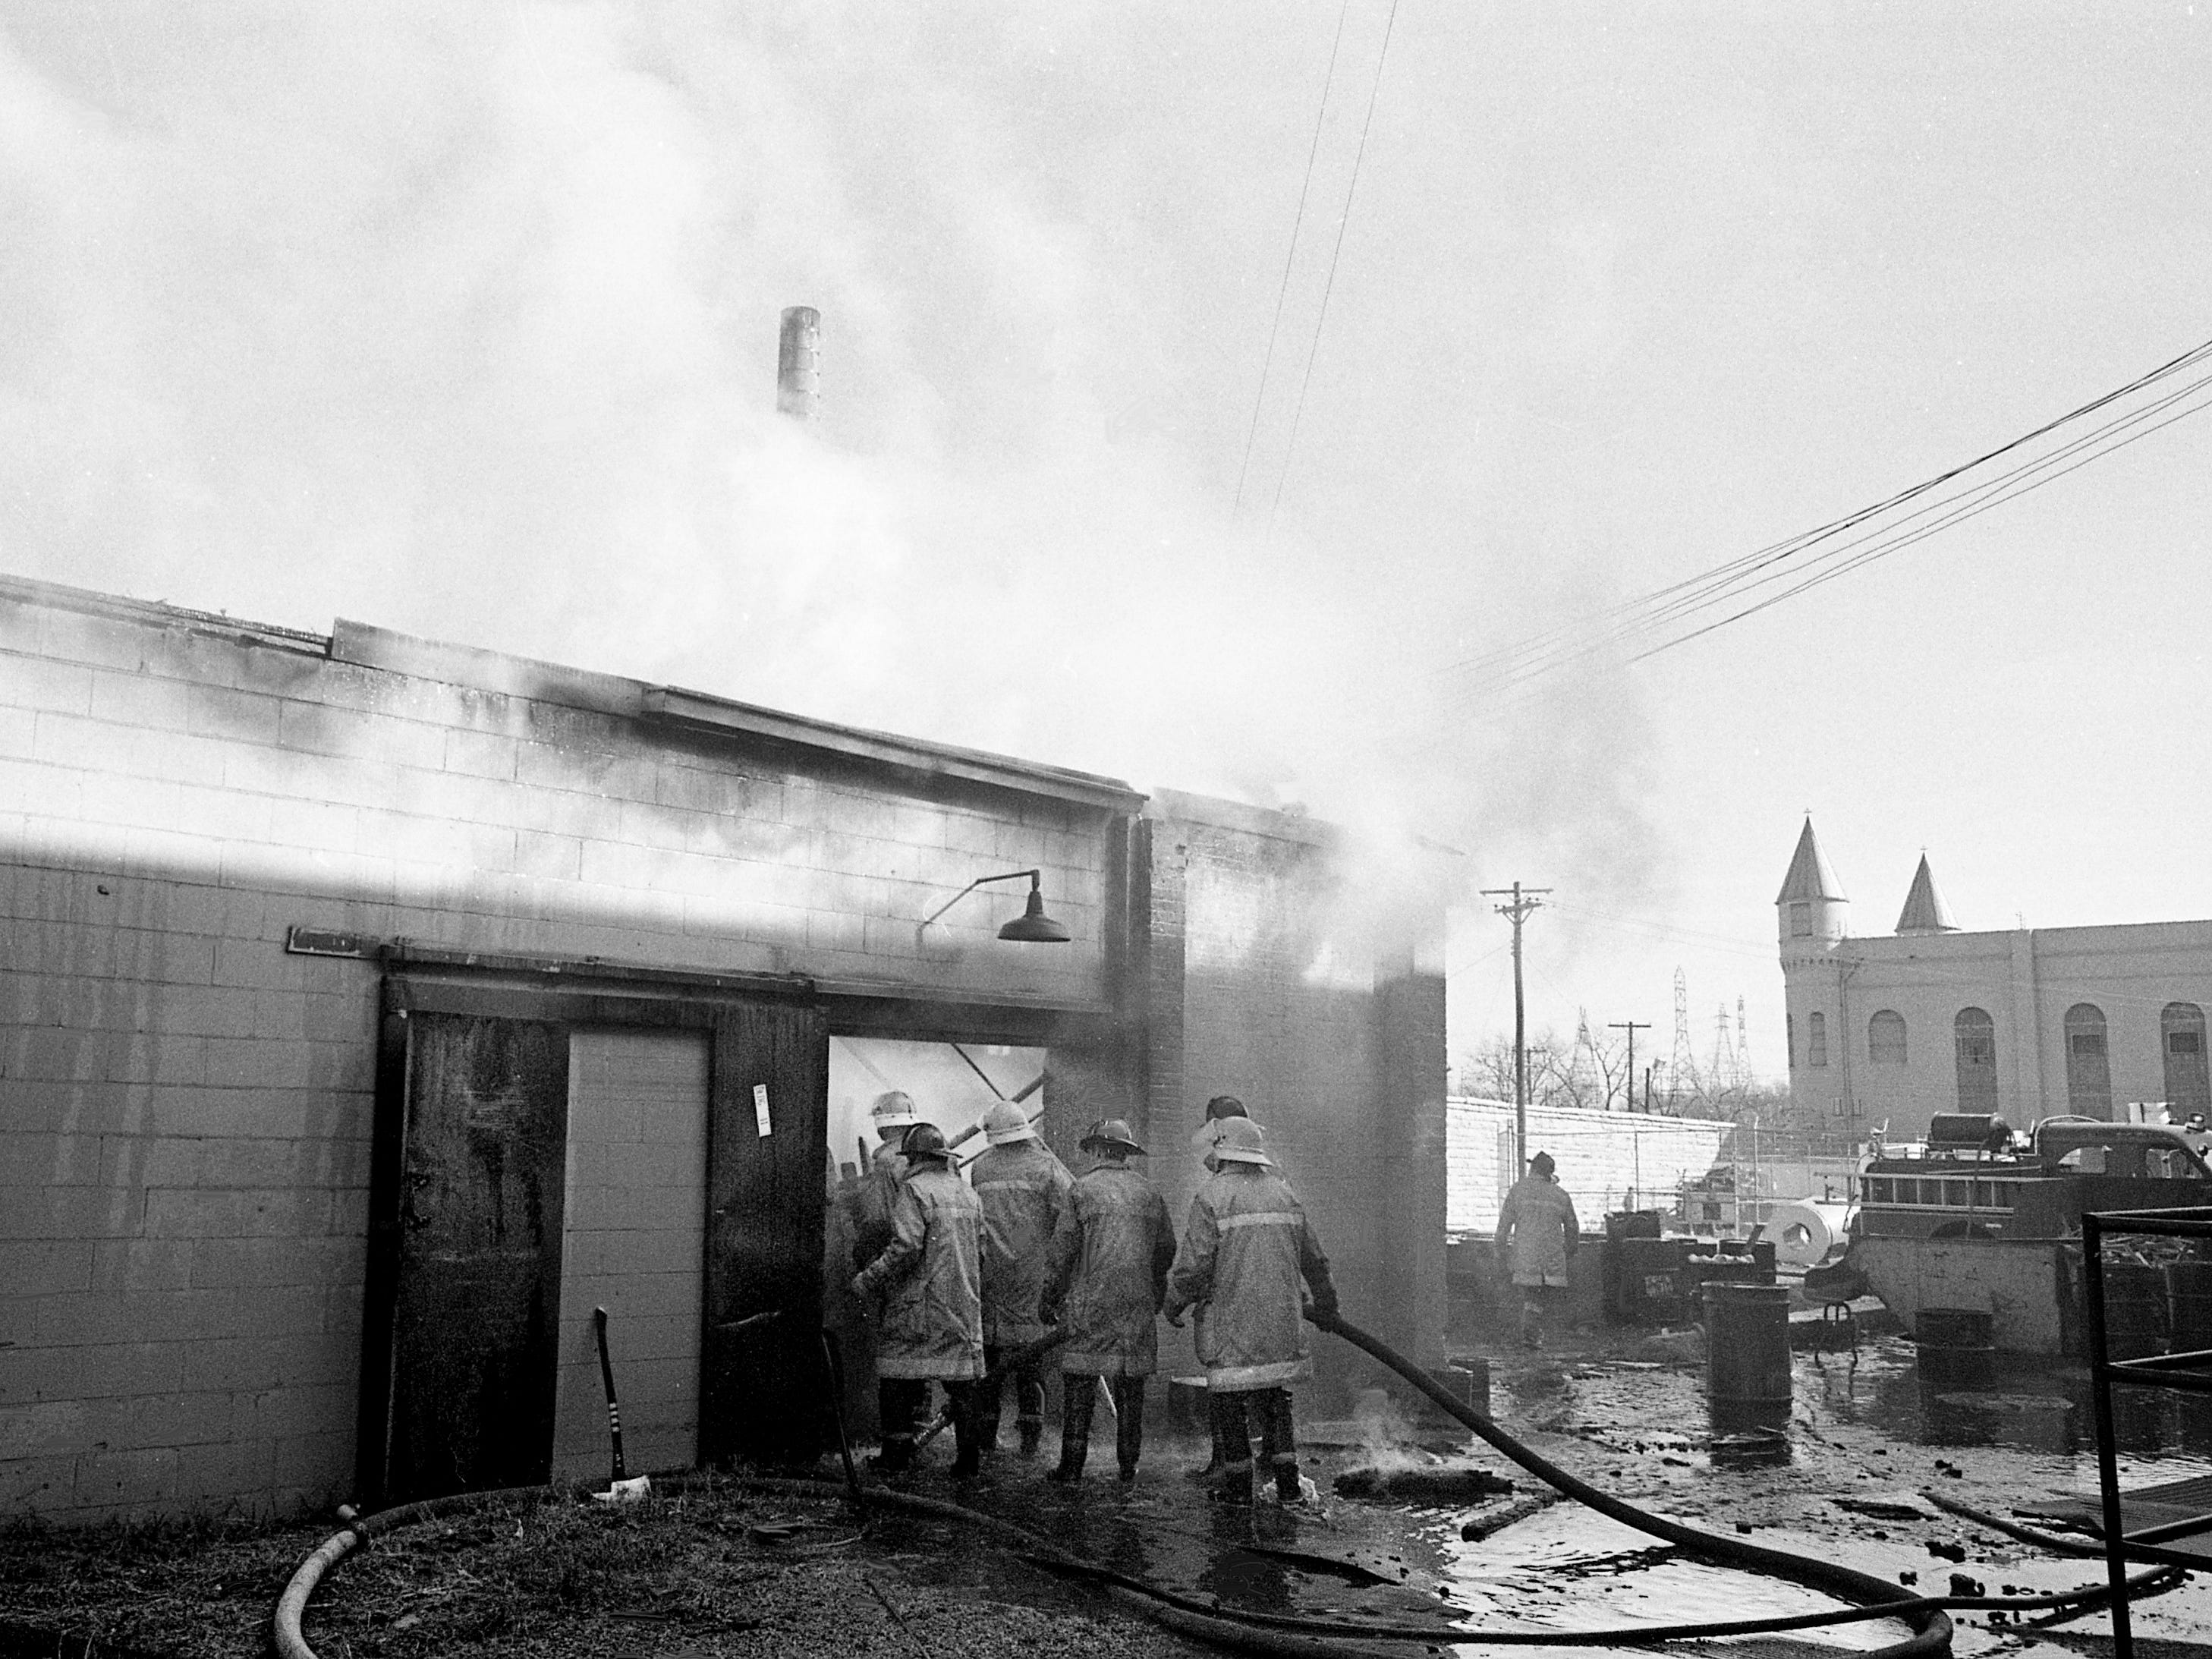 Metro firefighters battle a two-alarm blaze, which gutted the welding shop at the Tennessee State Prison on Jan. 4, 1979. Although no injuries were reported, officials estimated damages from the fire may total $100,000.